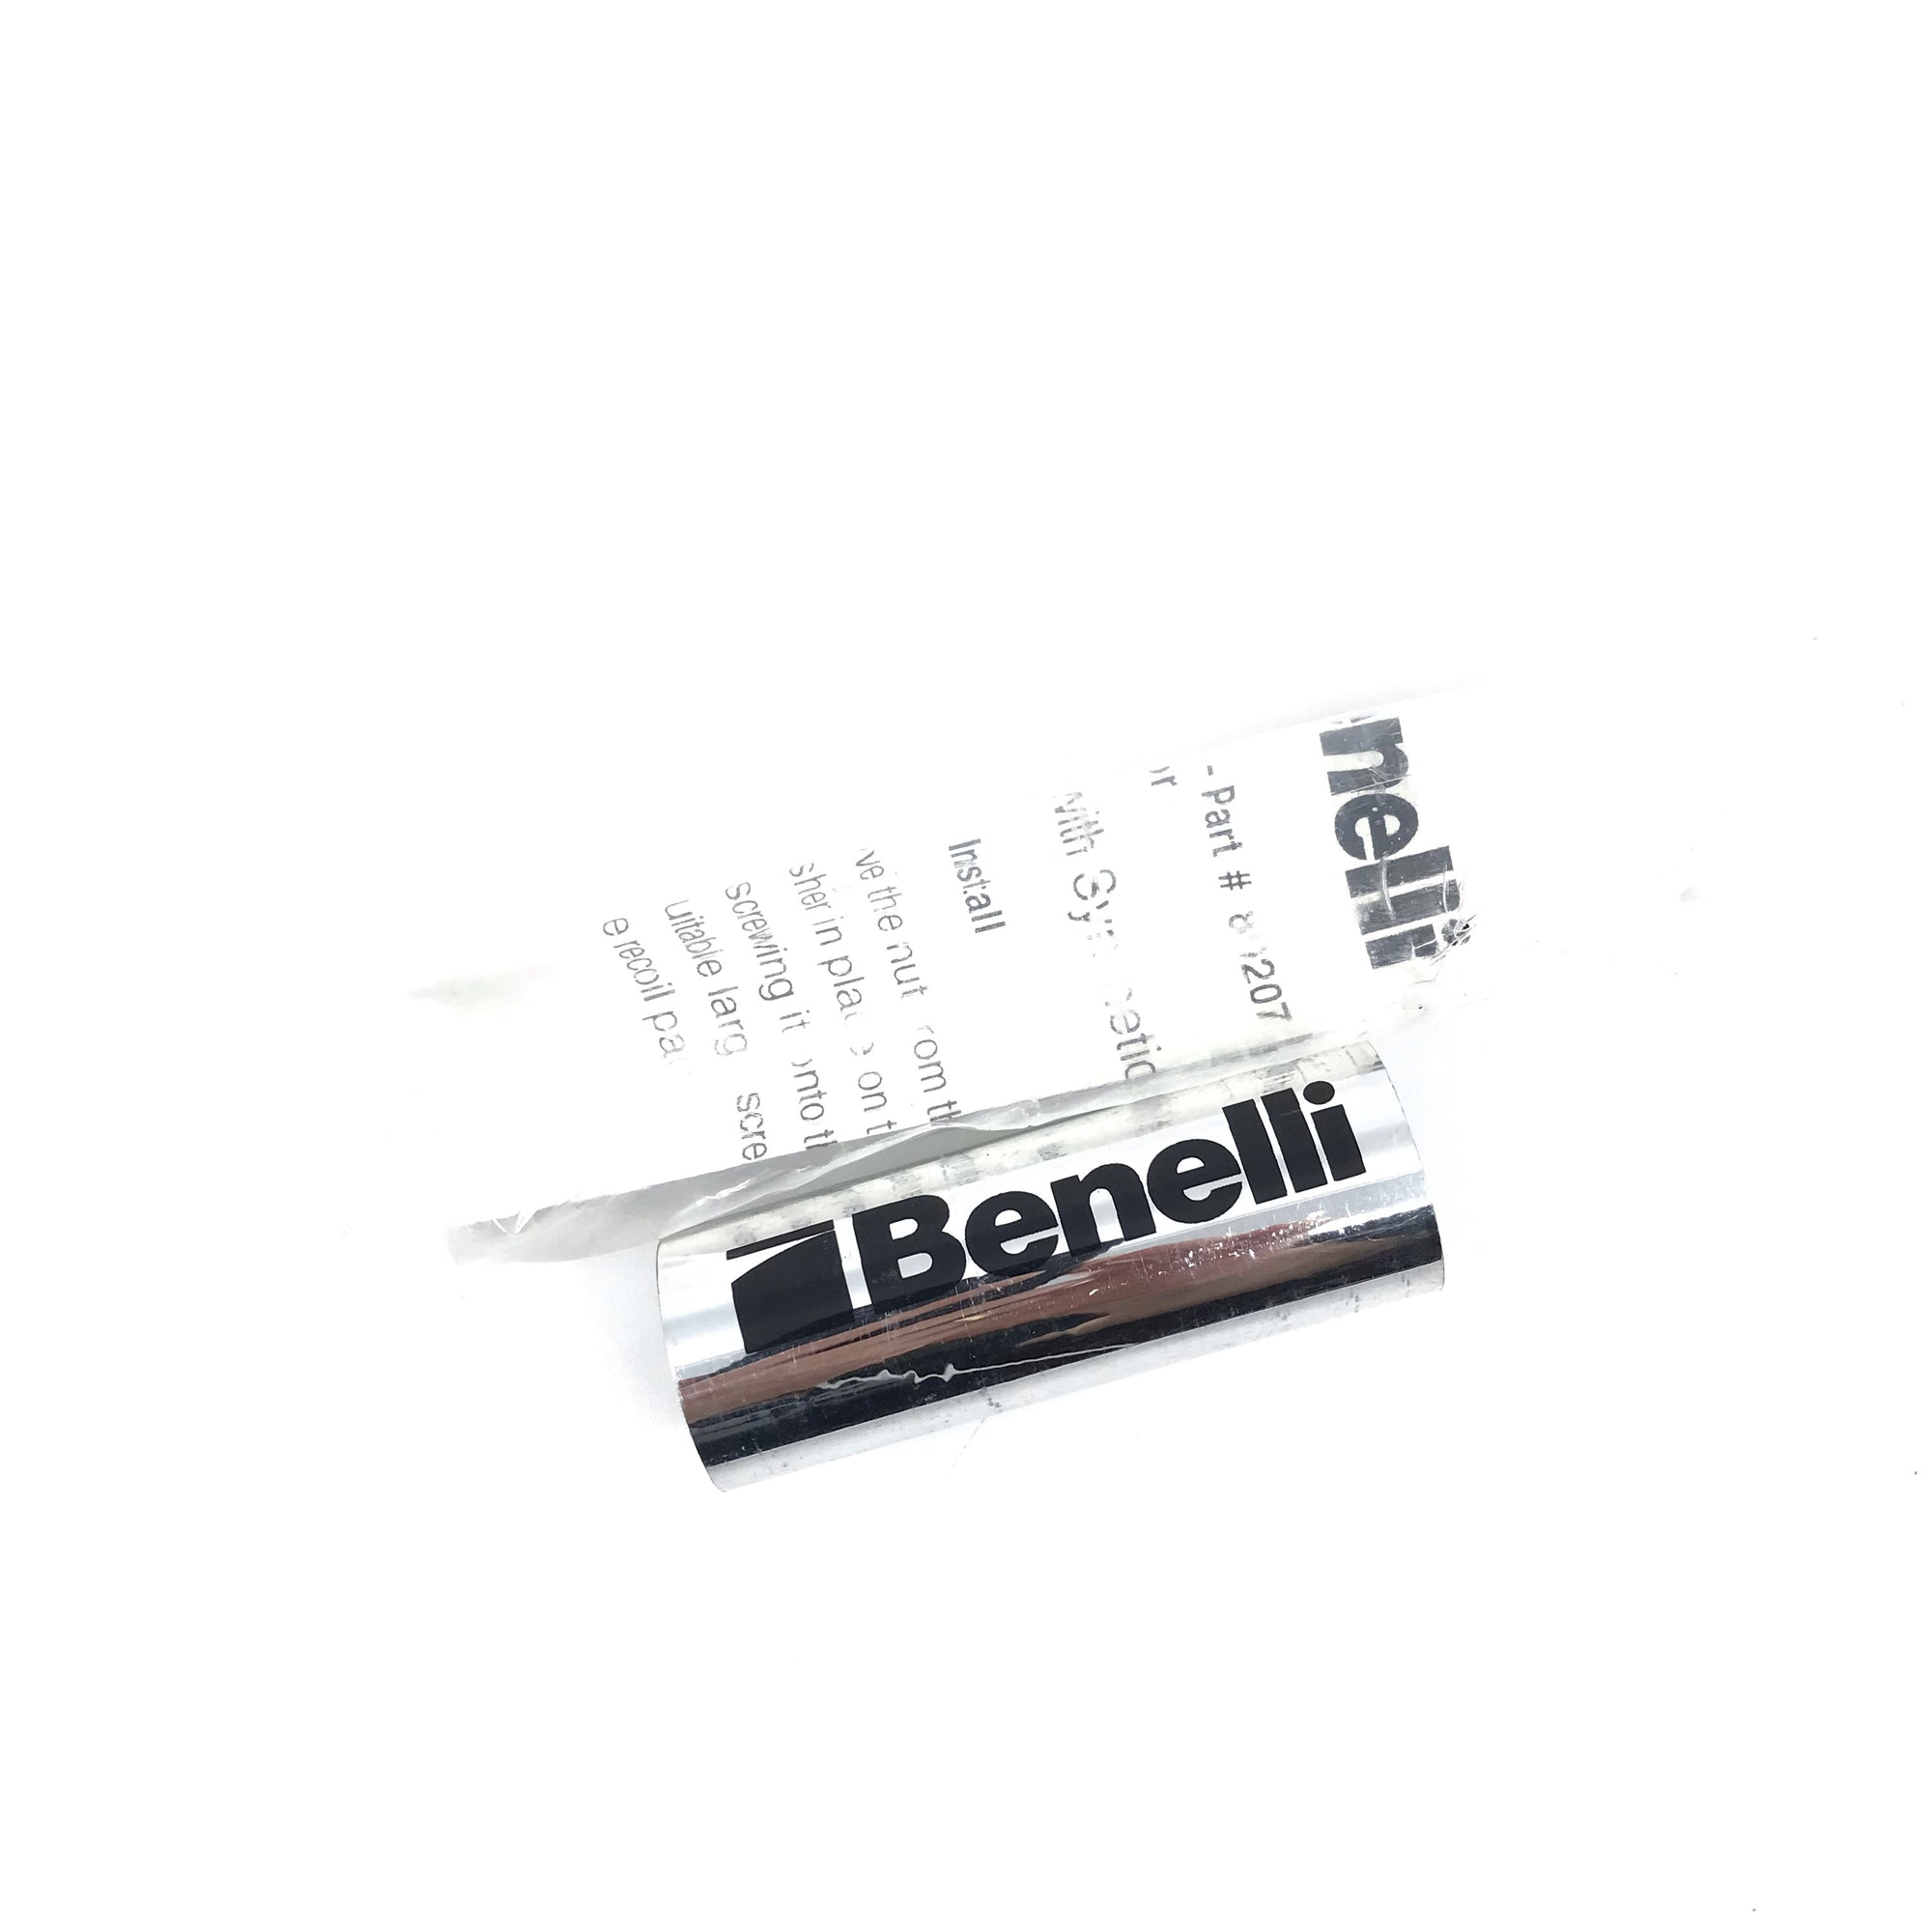 Benelli 80207 Recoil Reducer For Super Black Eagle & M1 Shotgun